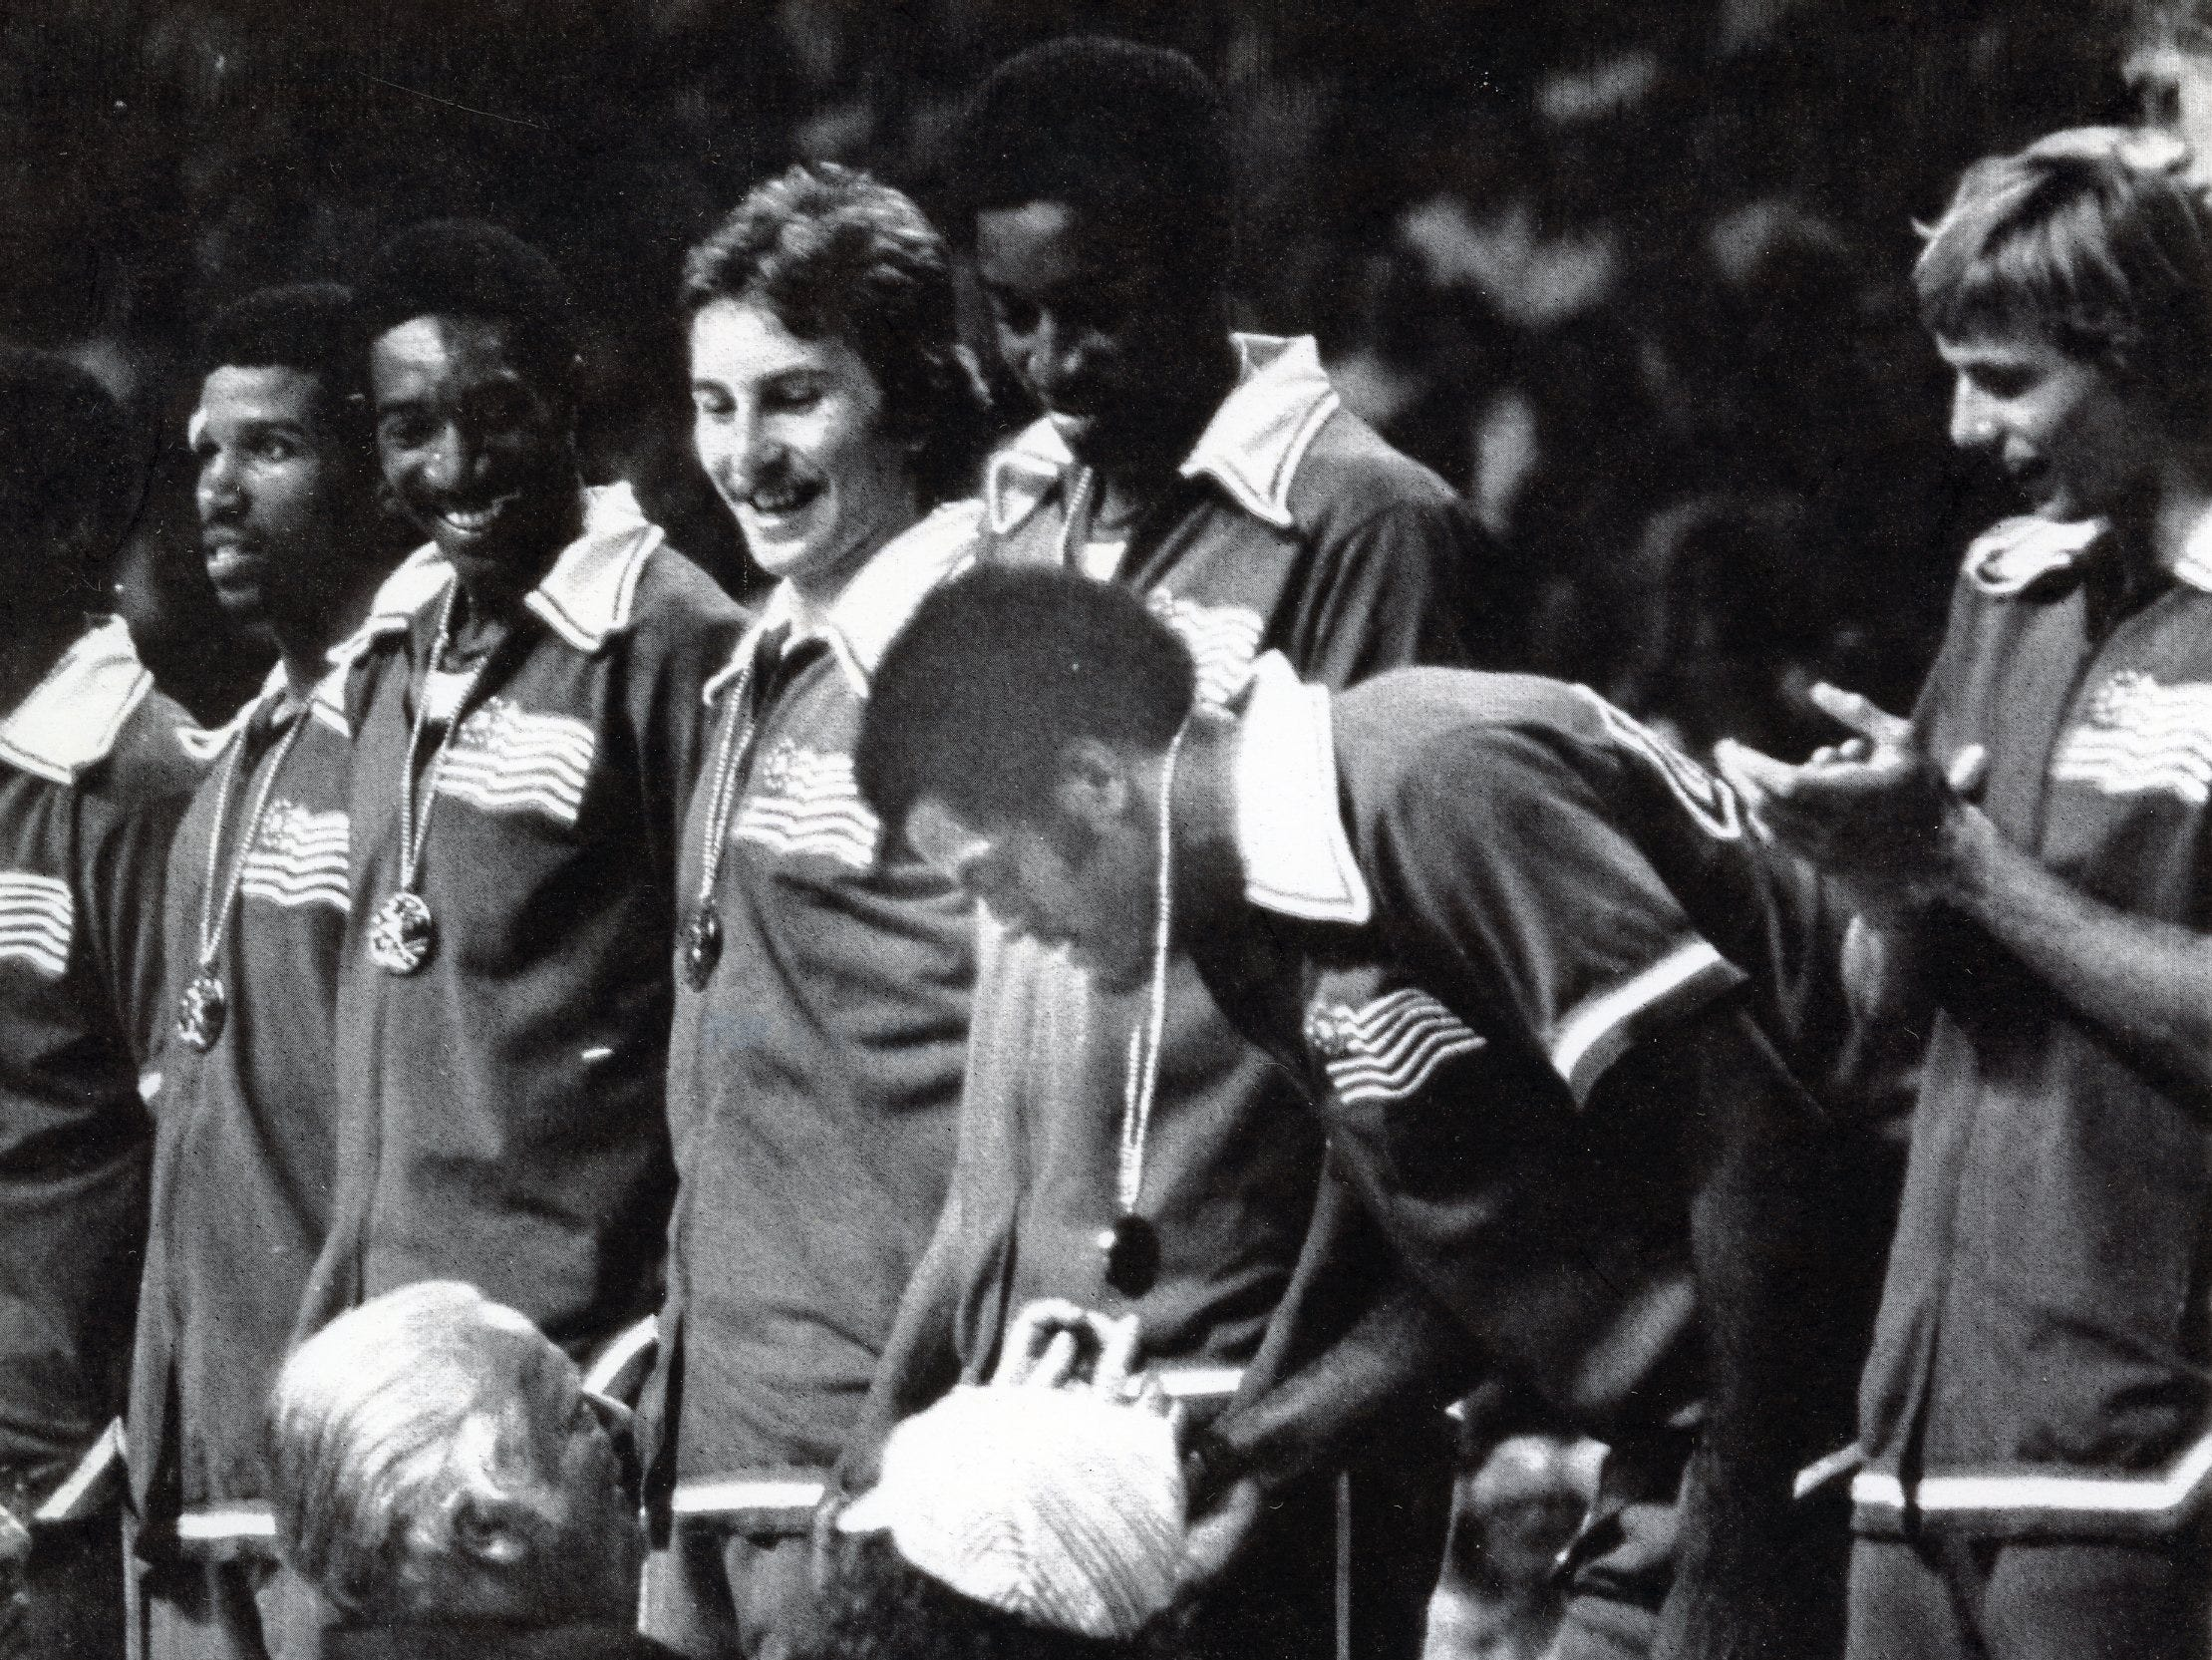 Members of the 1976 Olympic mens basketball team receive their gold medals from IOC president Lord Killanin after defeating Yugoslavia on July 27, 1976. Ernie Grunfeld is pictured third from left.